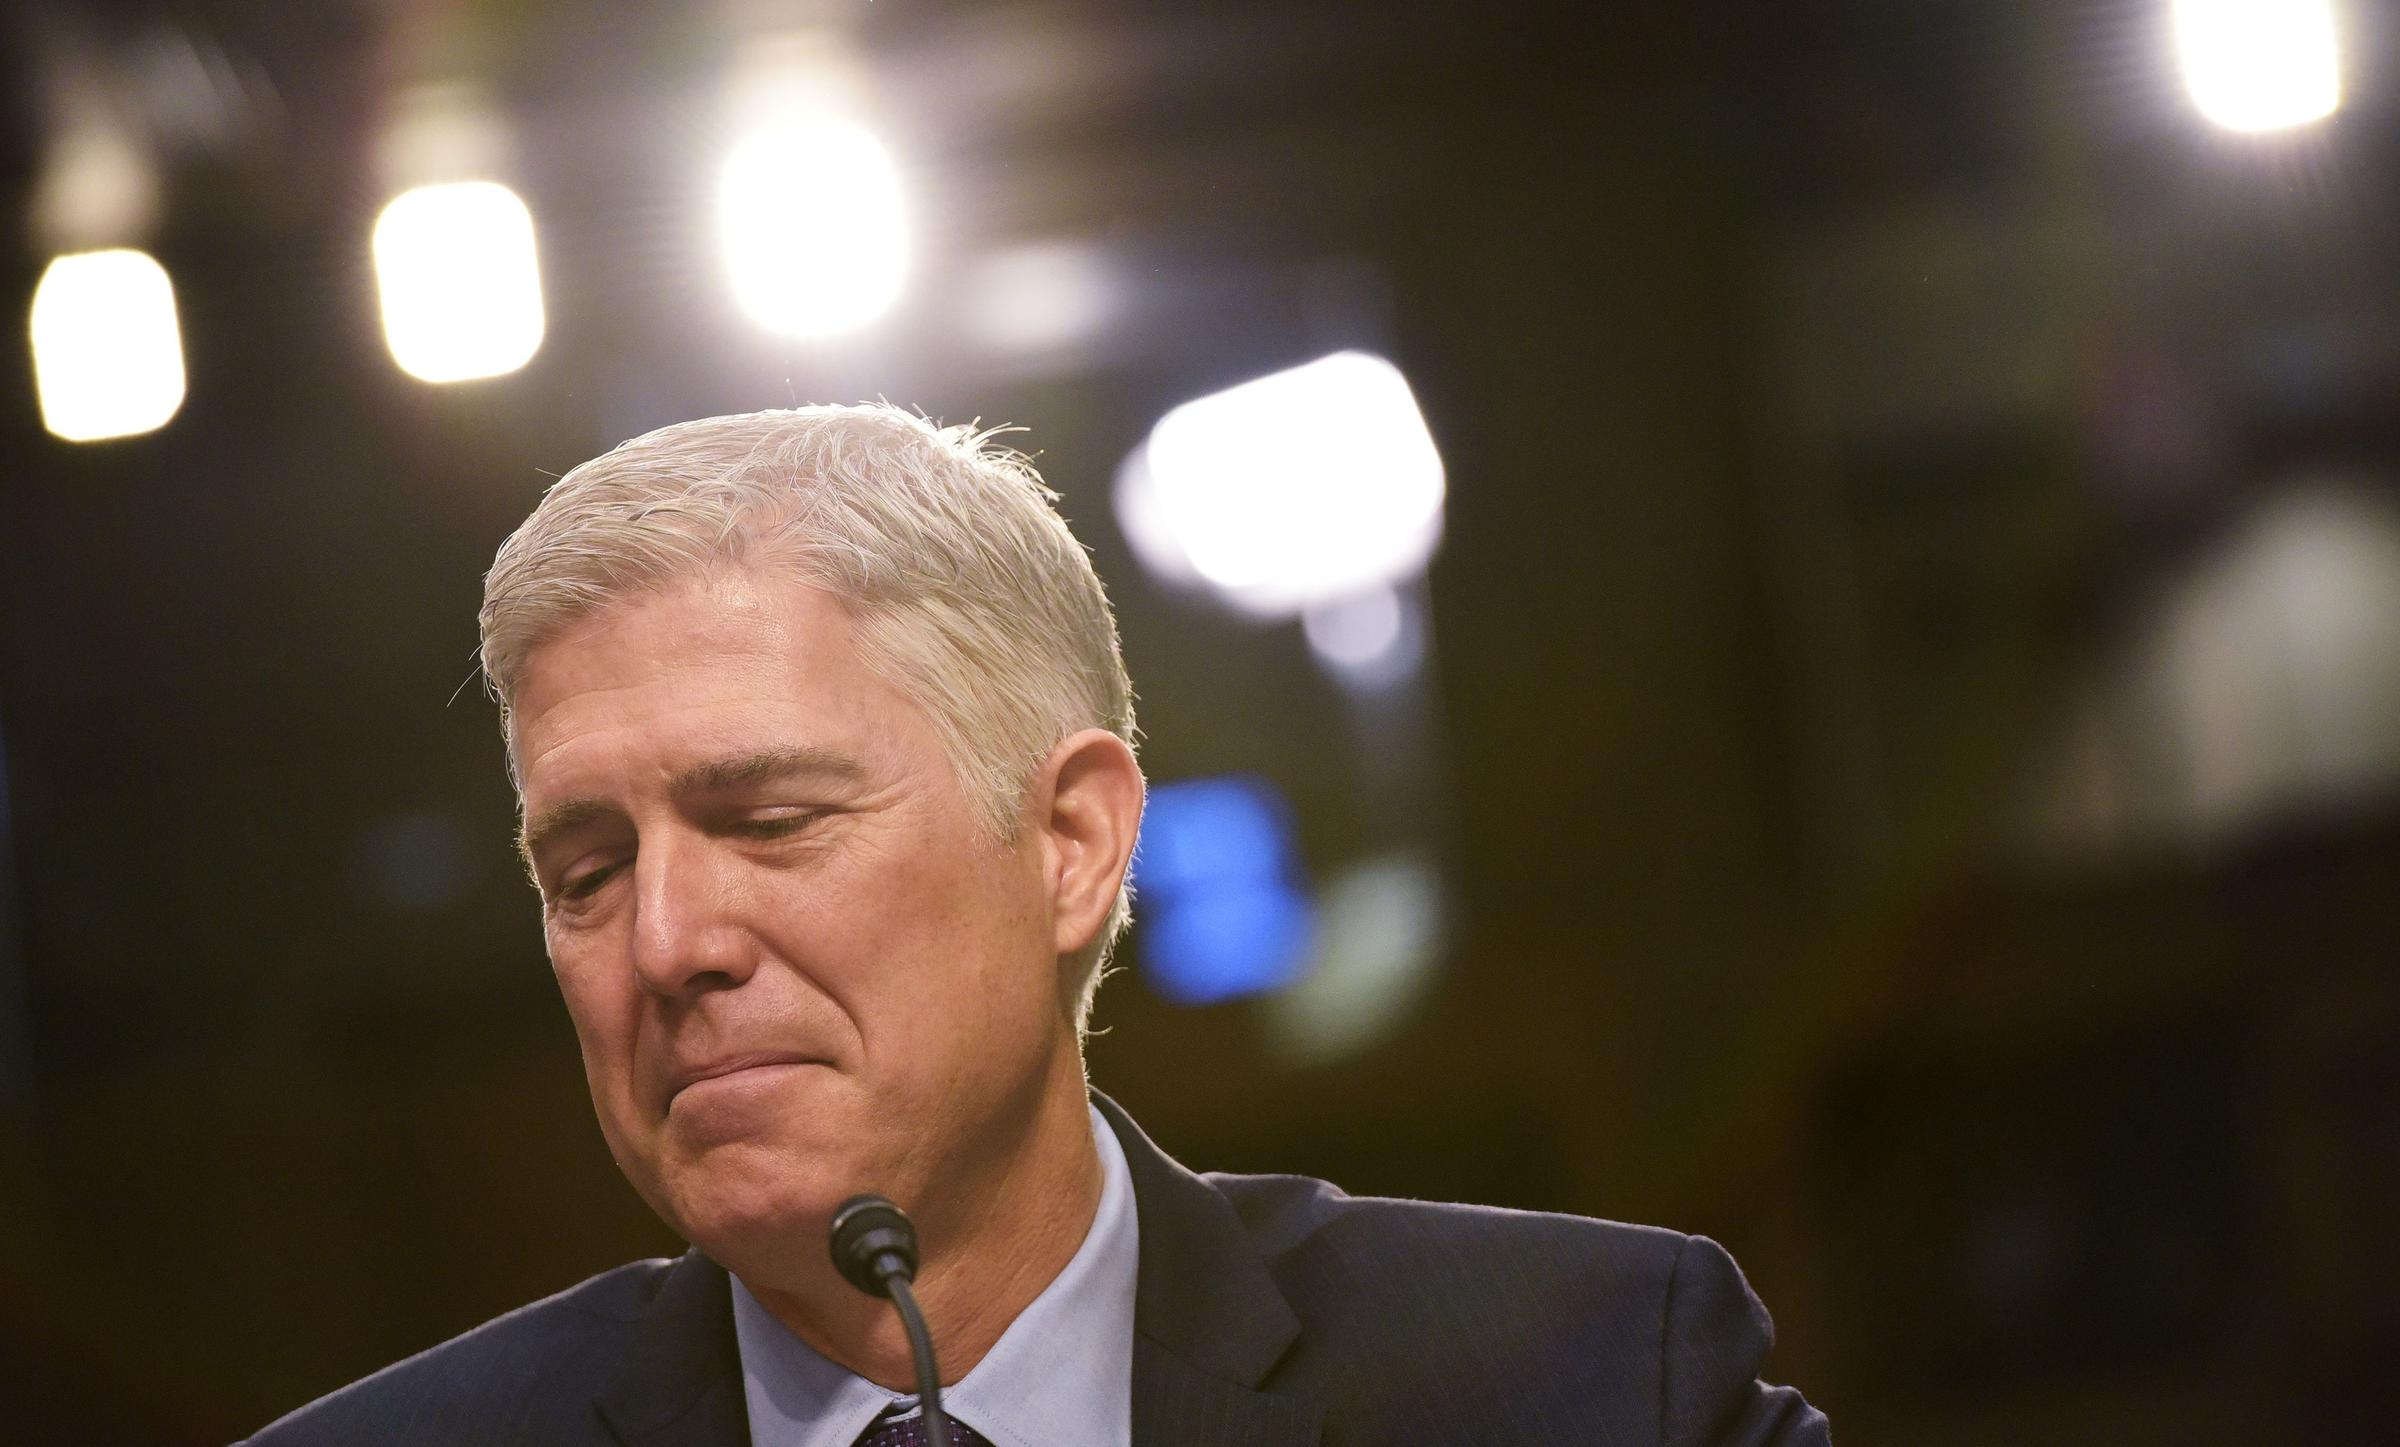 5 insights into judge neil gorsuch after 2nd day of confirmation